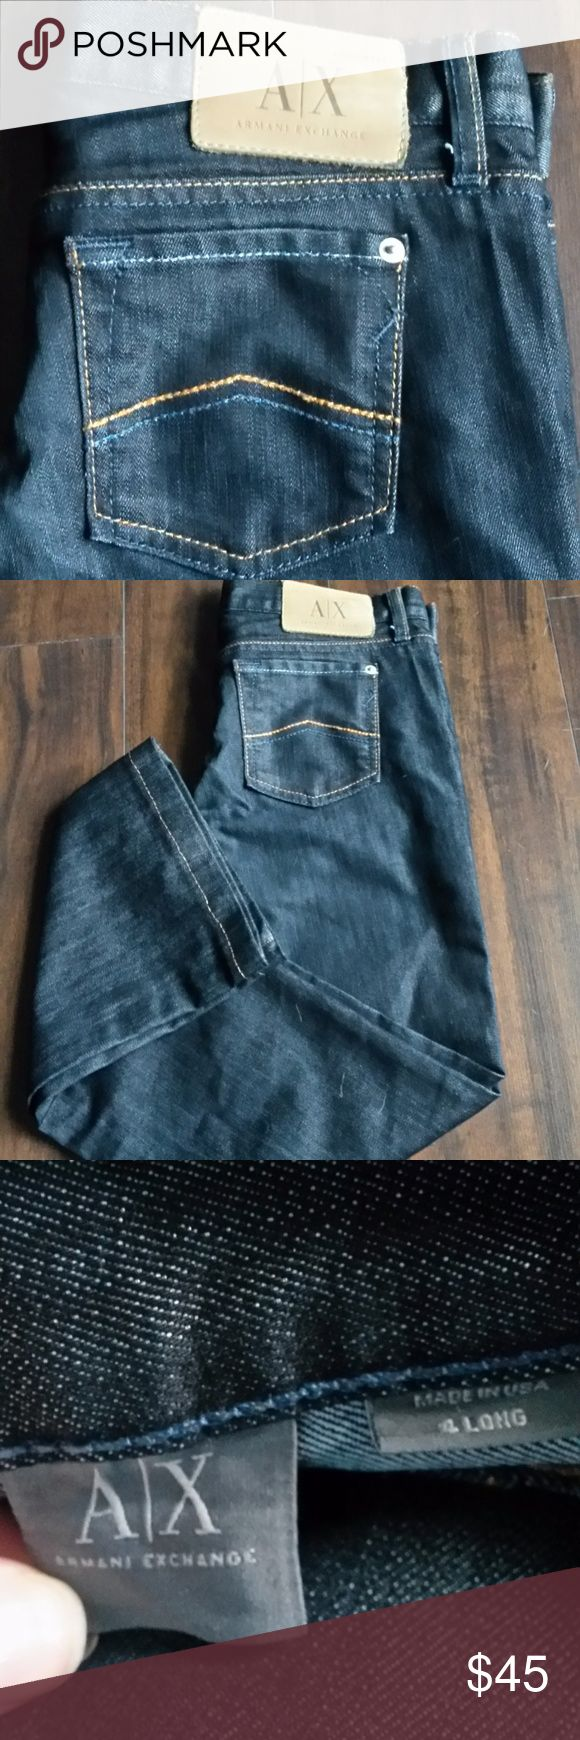 """PRICE ✂ Armani Exchange Jeans-size 4L Like New! Gorgeous boot-cut, dark washed jeans with gold and blue embroidery on the back pockets. Inseam 30"""" EUC Armani Exchange Jeans Boot Cut"""